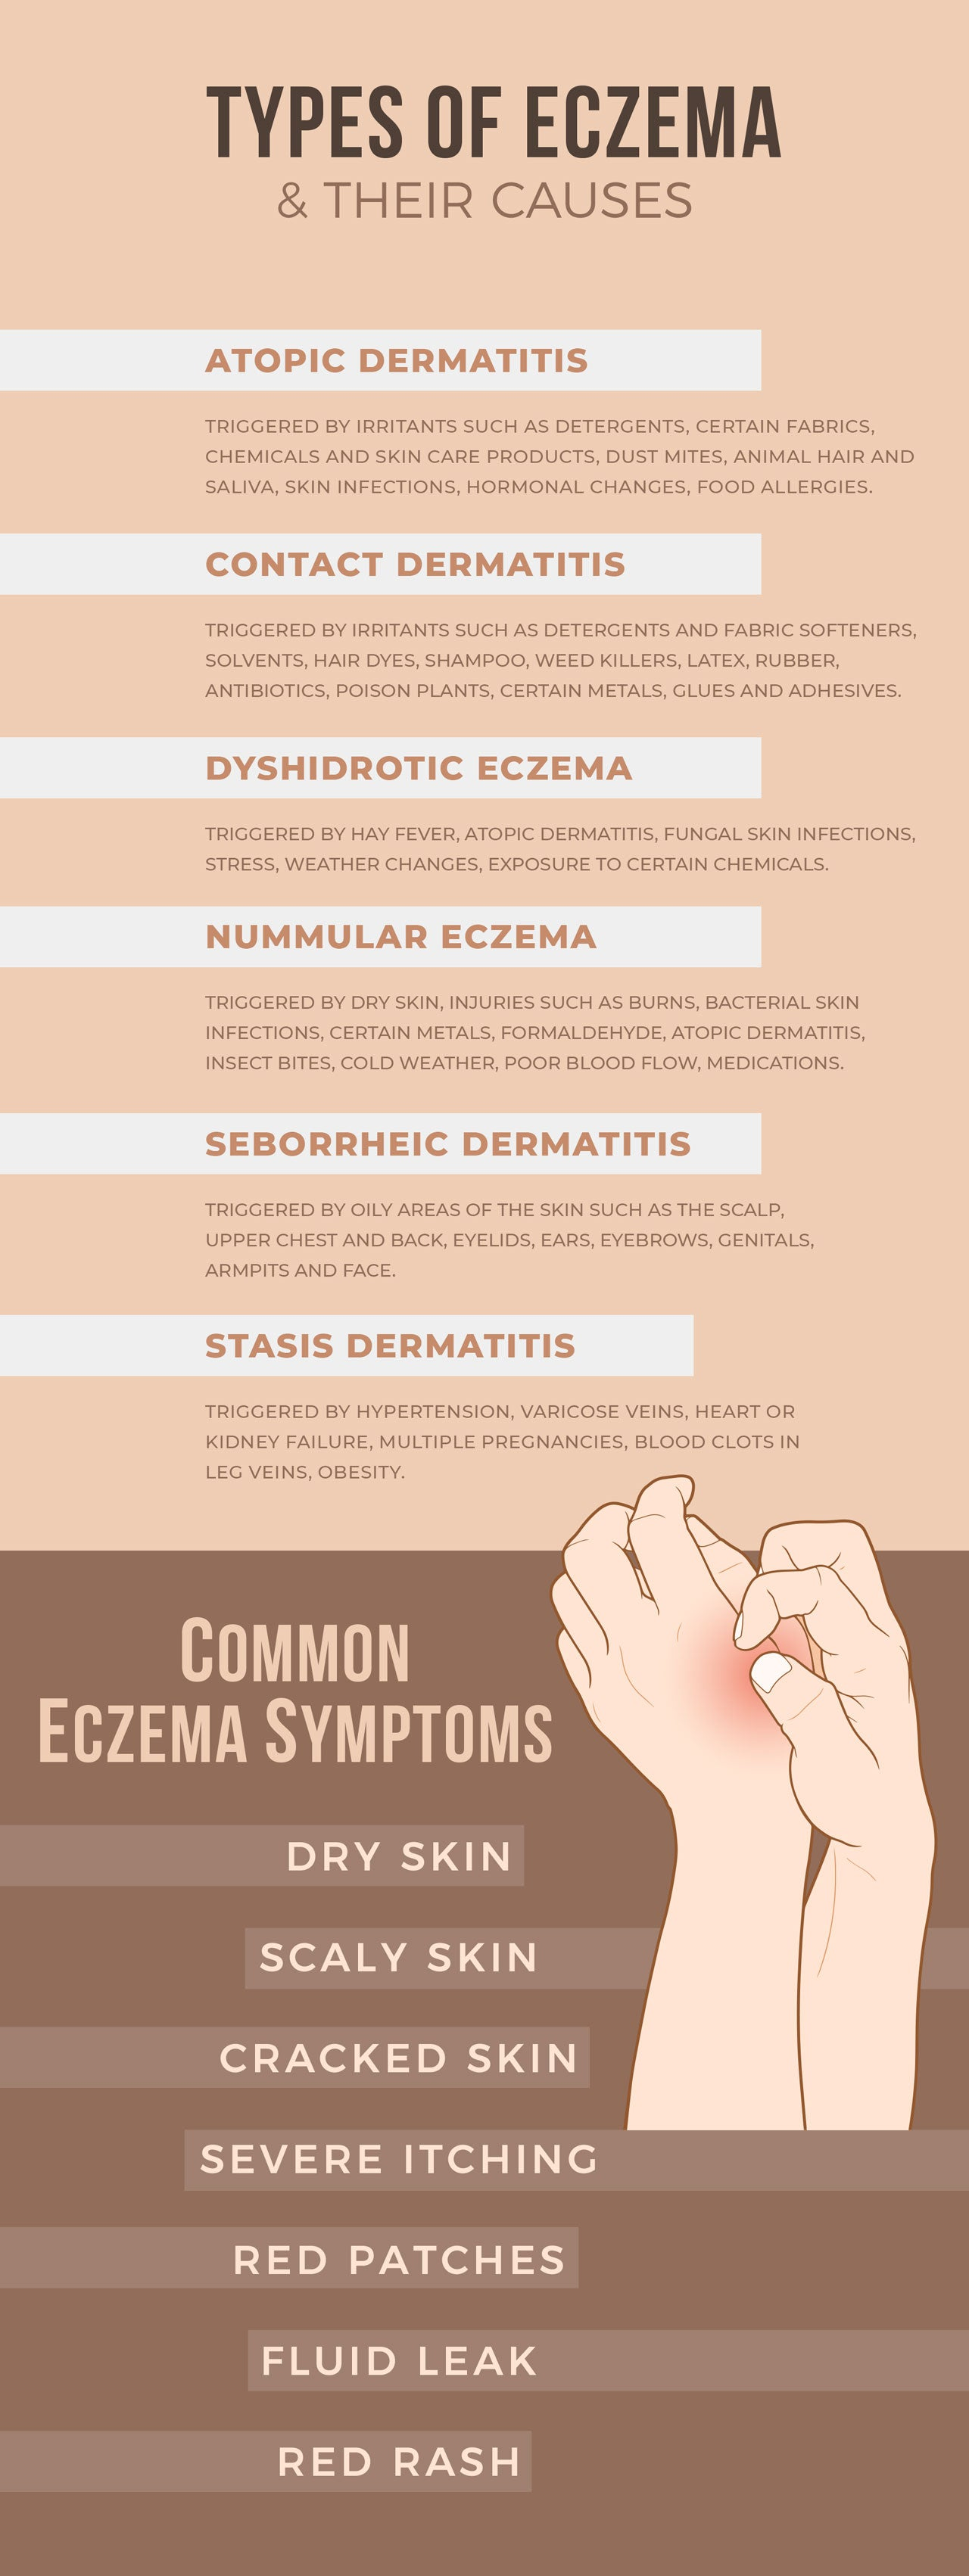 Eczema is a condition in which parts of your skin become red and itchy. Symptoms can be intense for a period of time, calm down, then surface again. More than 30 million Americans have some form of eczema. In this article, we're covering the types, the causes, the symptoms, and the eczema remedies for skin relief.